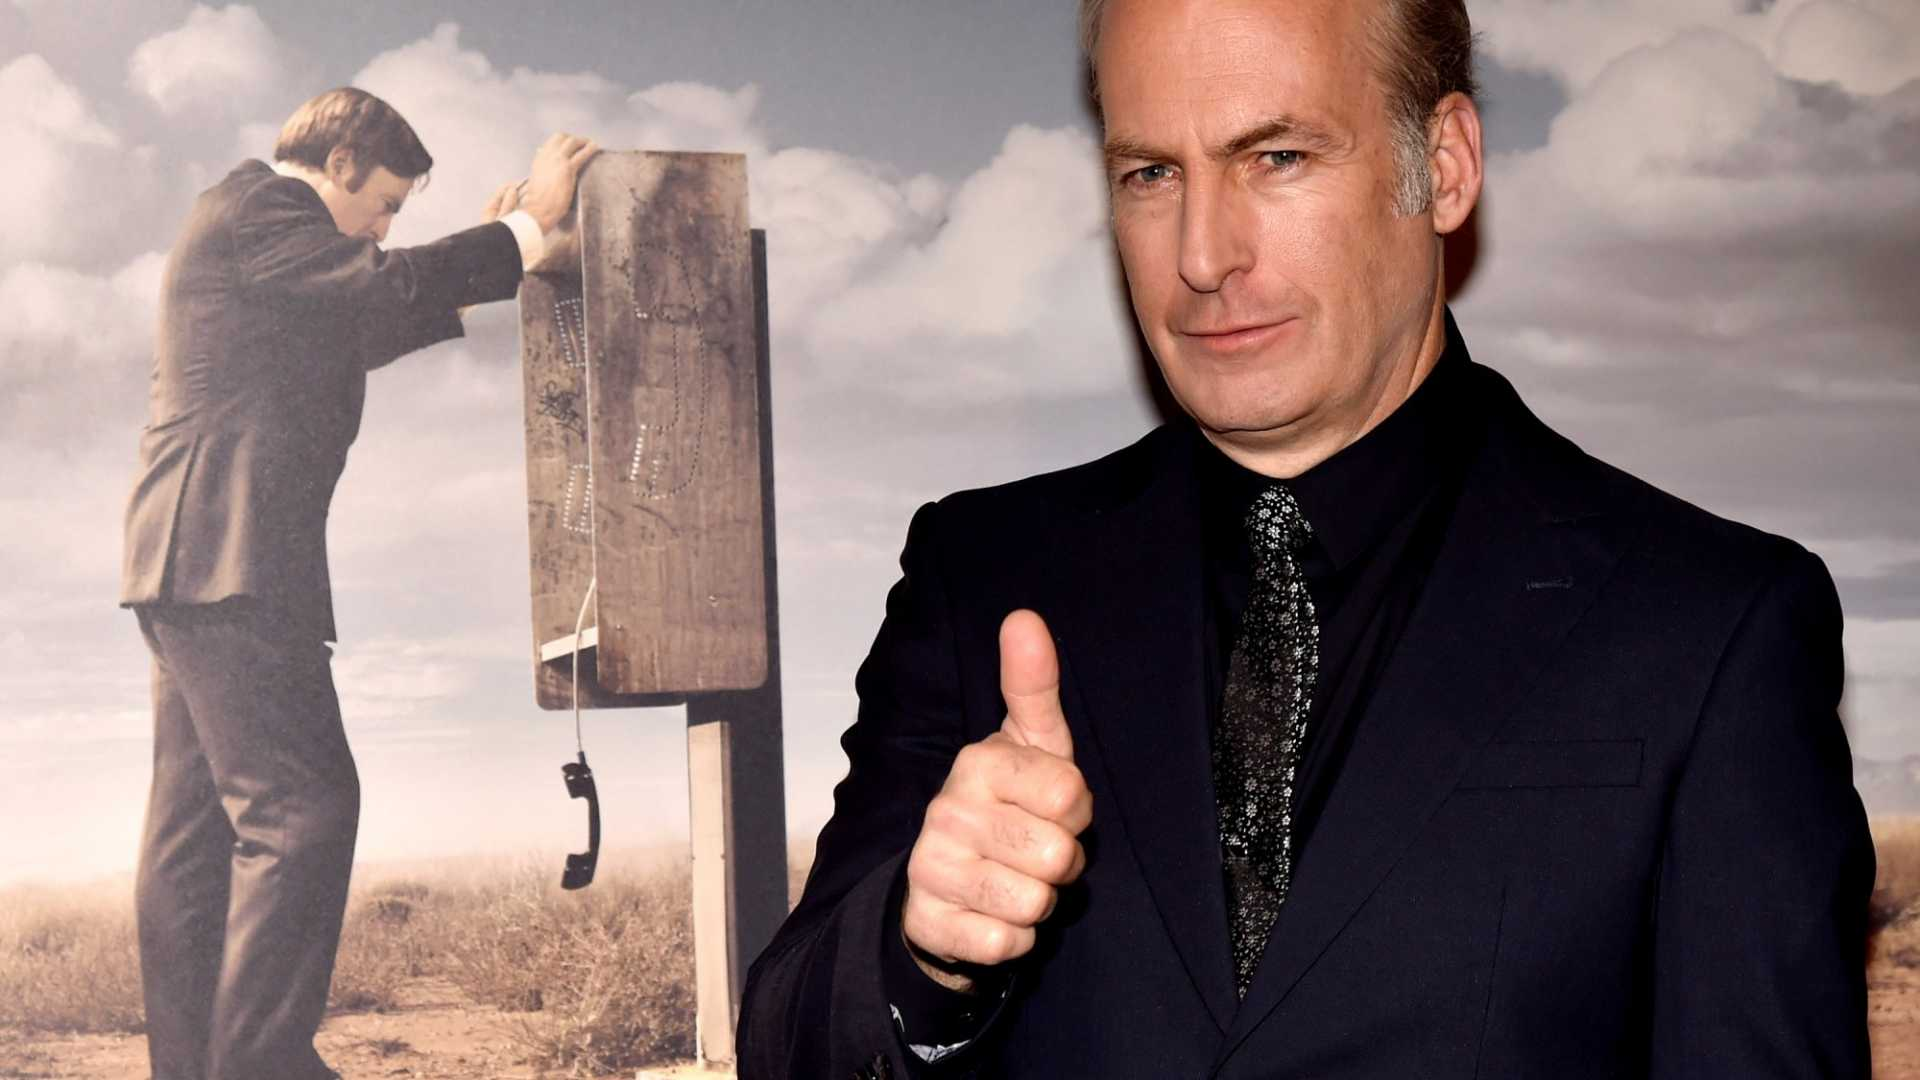 Watching 'Better Call Saul' Is Like Getting an MBA in Entrepreneurism